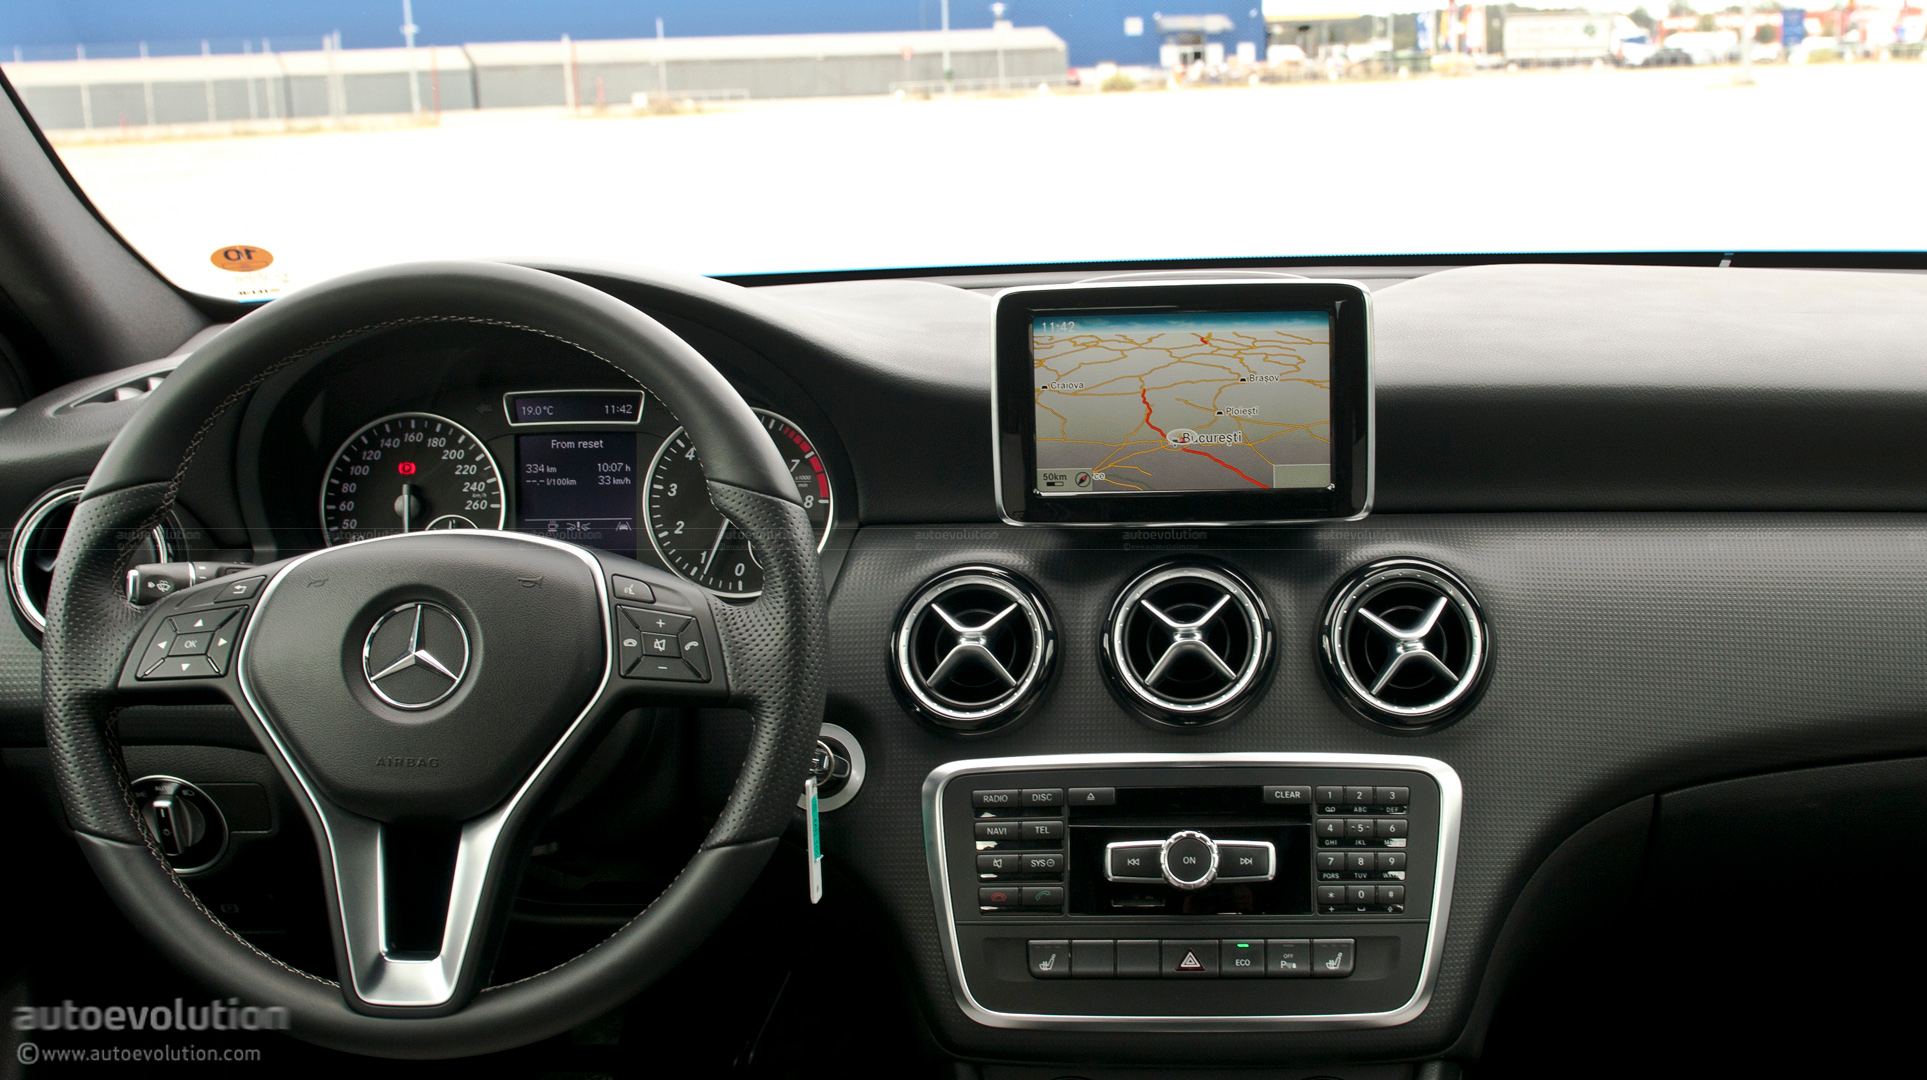 Mercedes Benz C Coupe >> 2012 Mercedes A-Class First Drive Review - page 2 - autoevolution